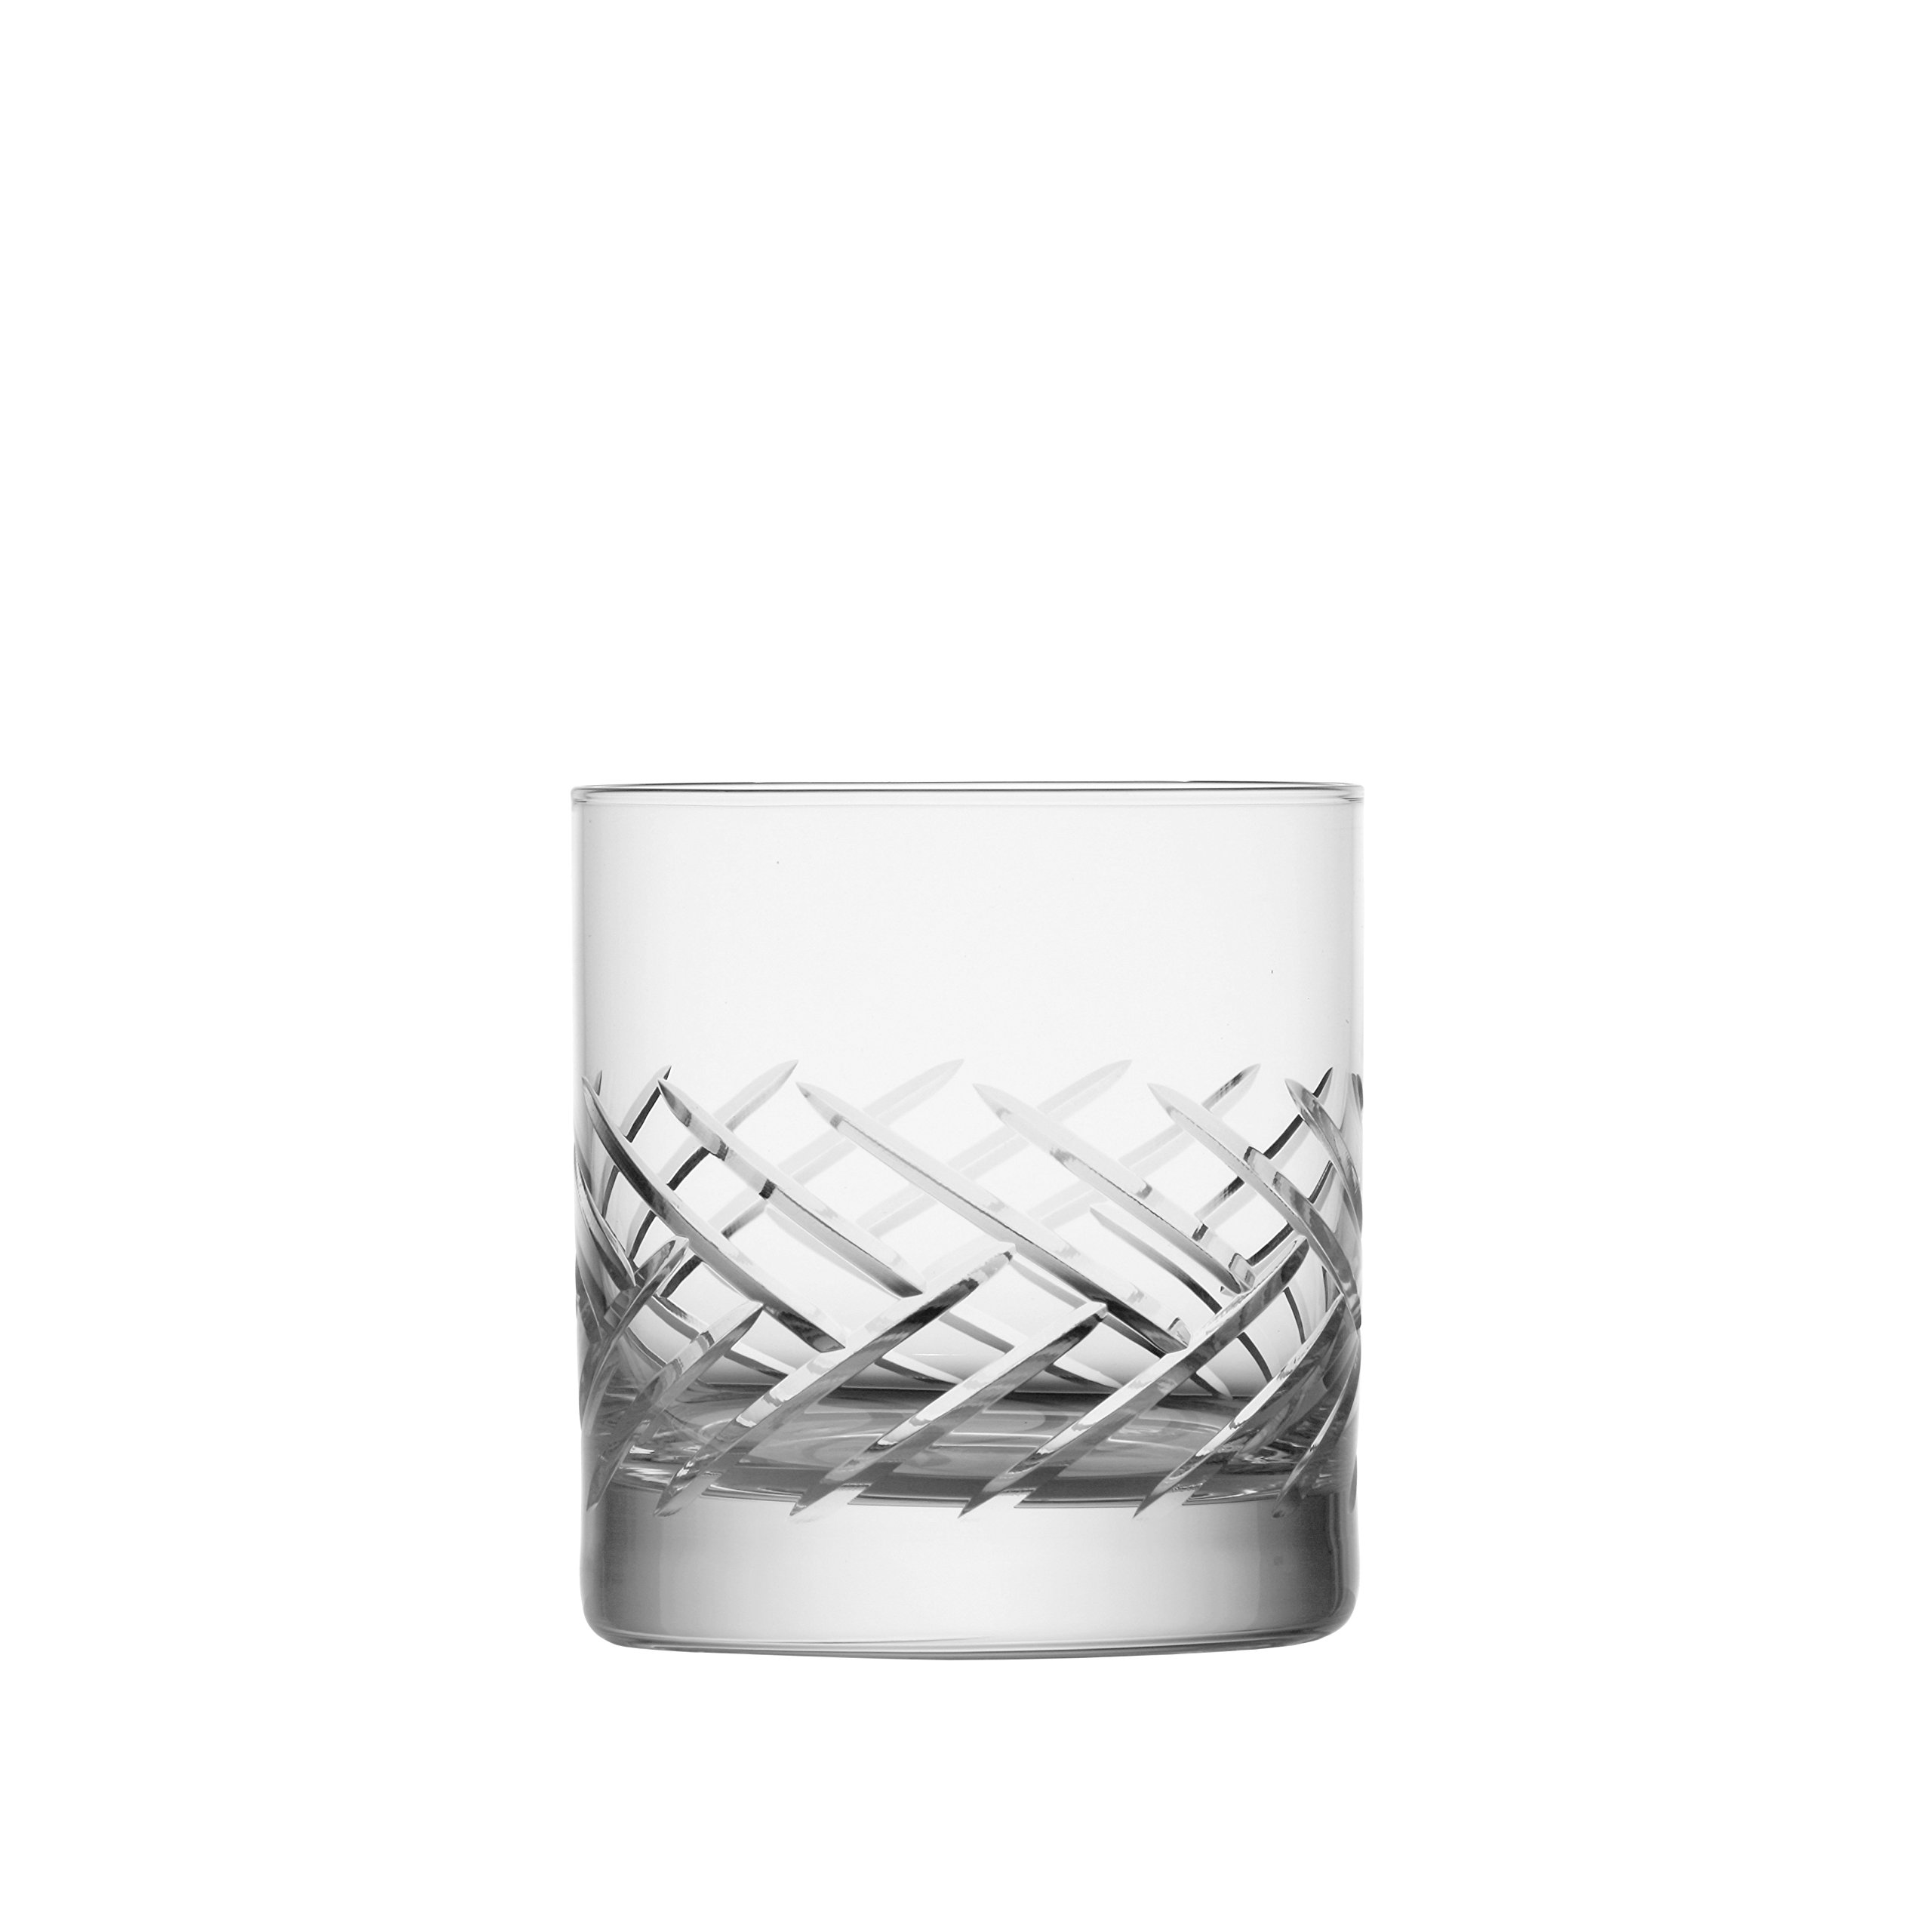 Schott Zwiesel Tritan Crystal Glass Distil Barware Collection Arran Old Fashioned Cocktail Glasses (Set of 6), 13.5 oz, Clear